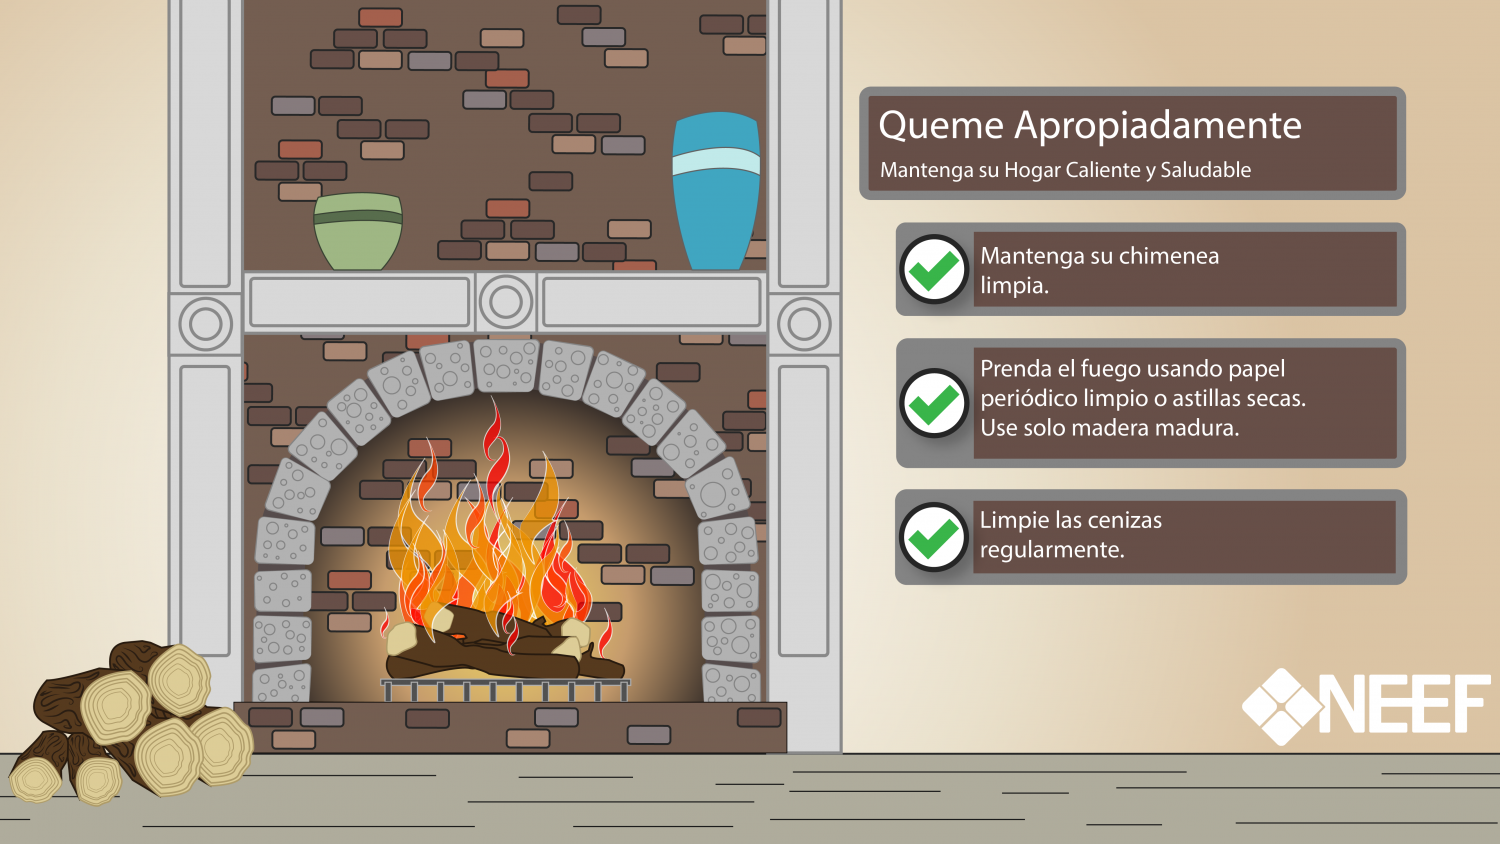 Burn wisely infographic in Spanish